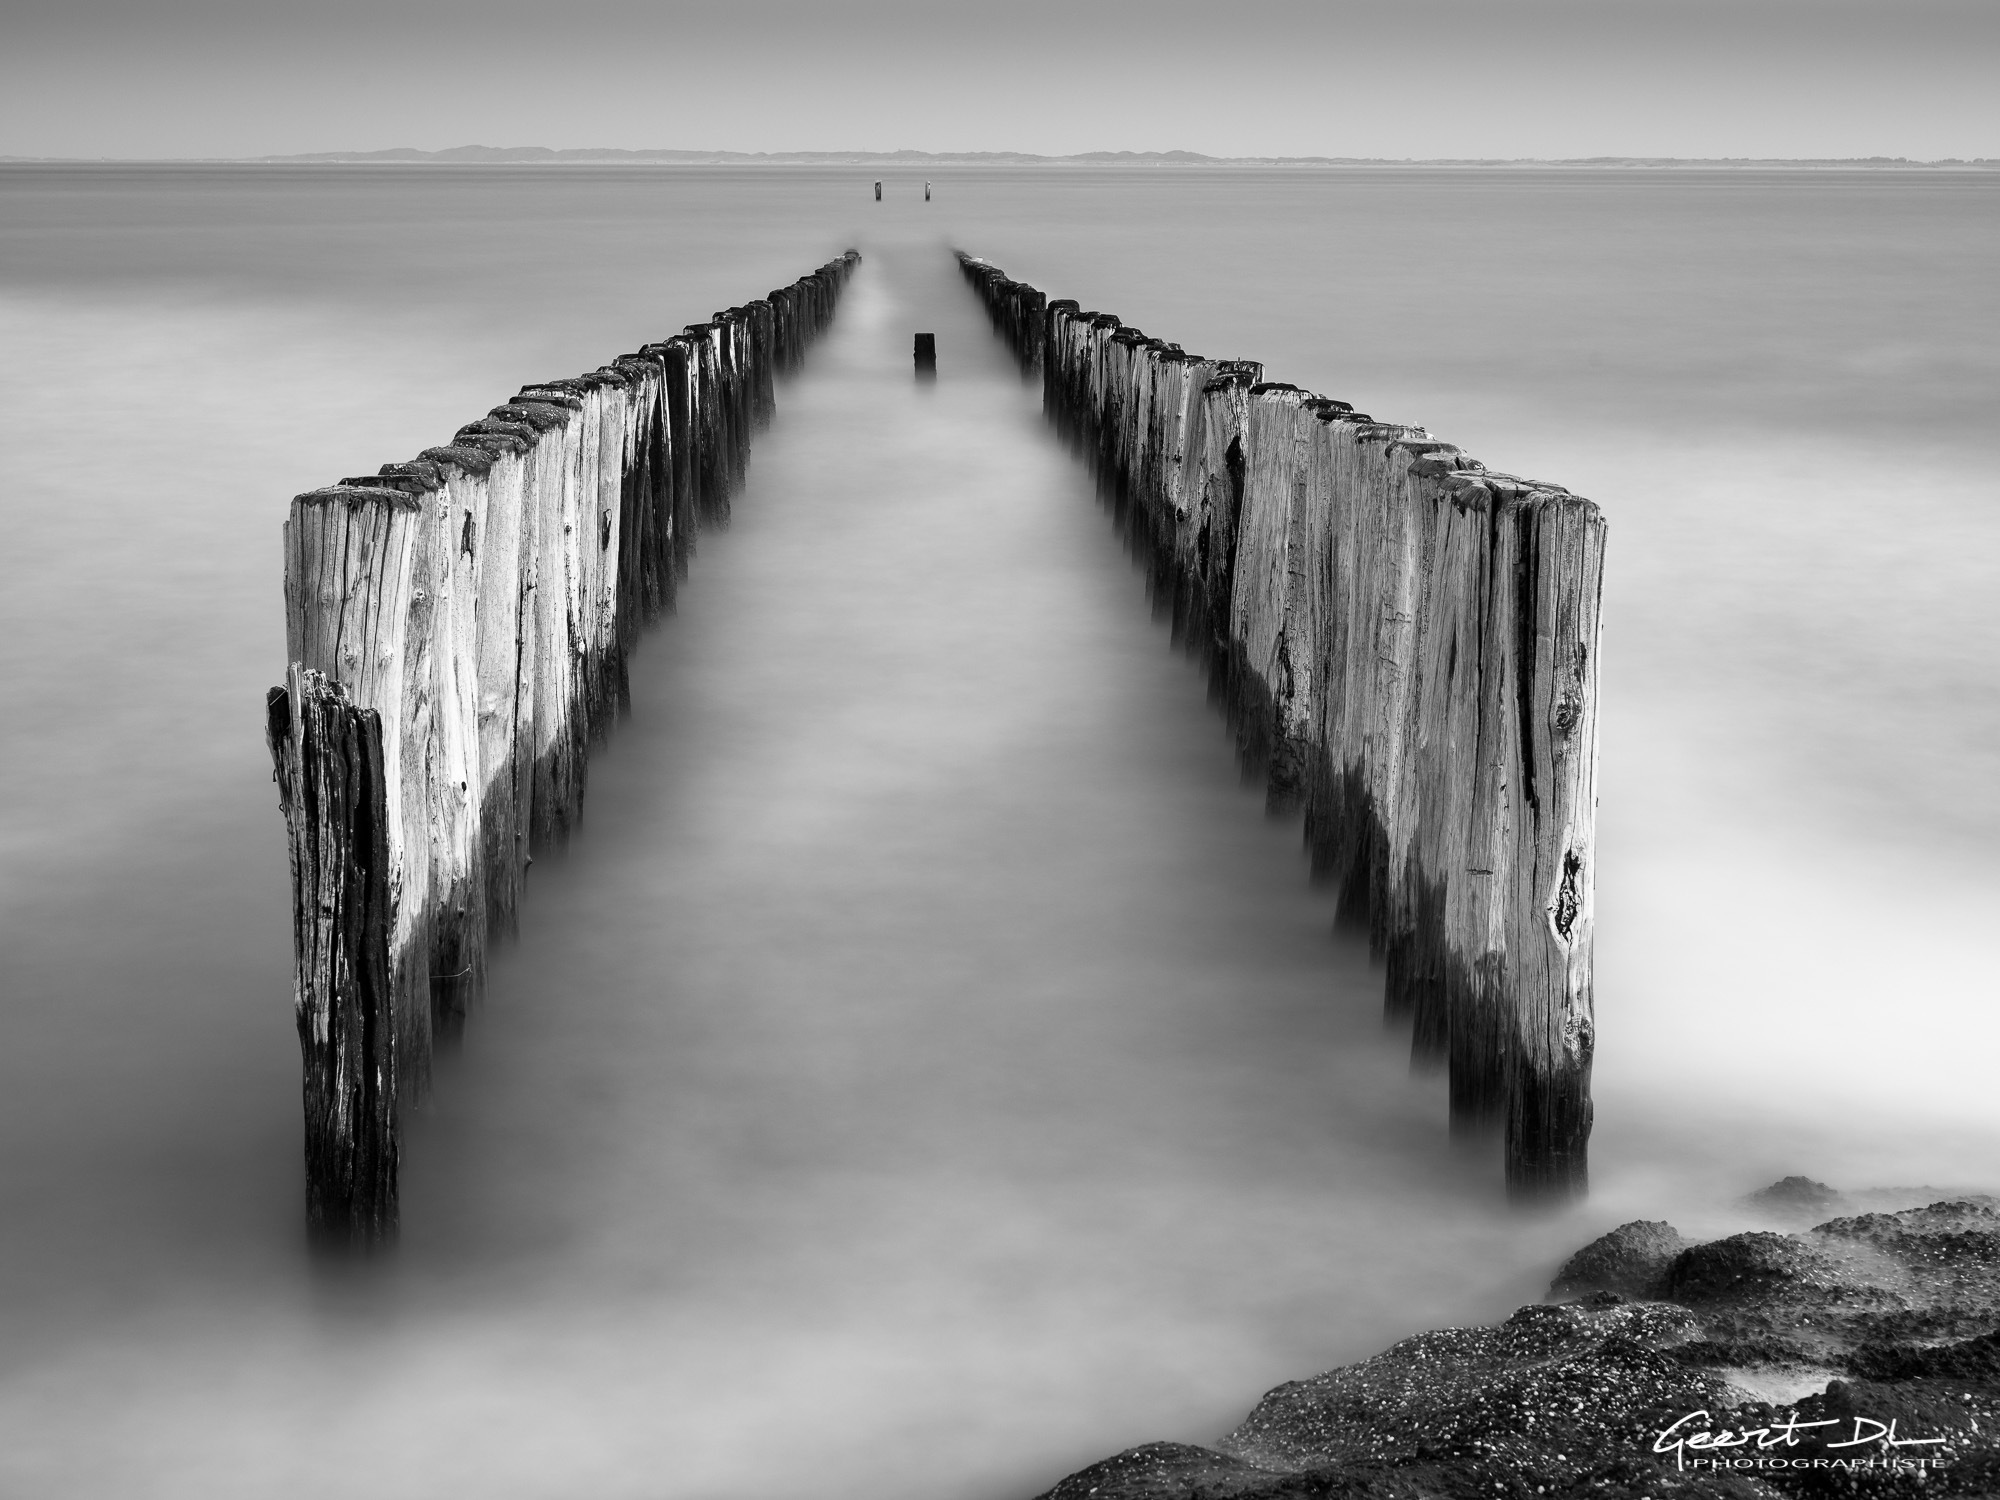 parallels by GeertDoutreligne